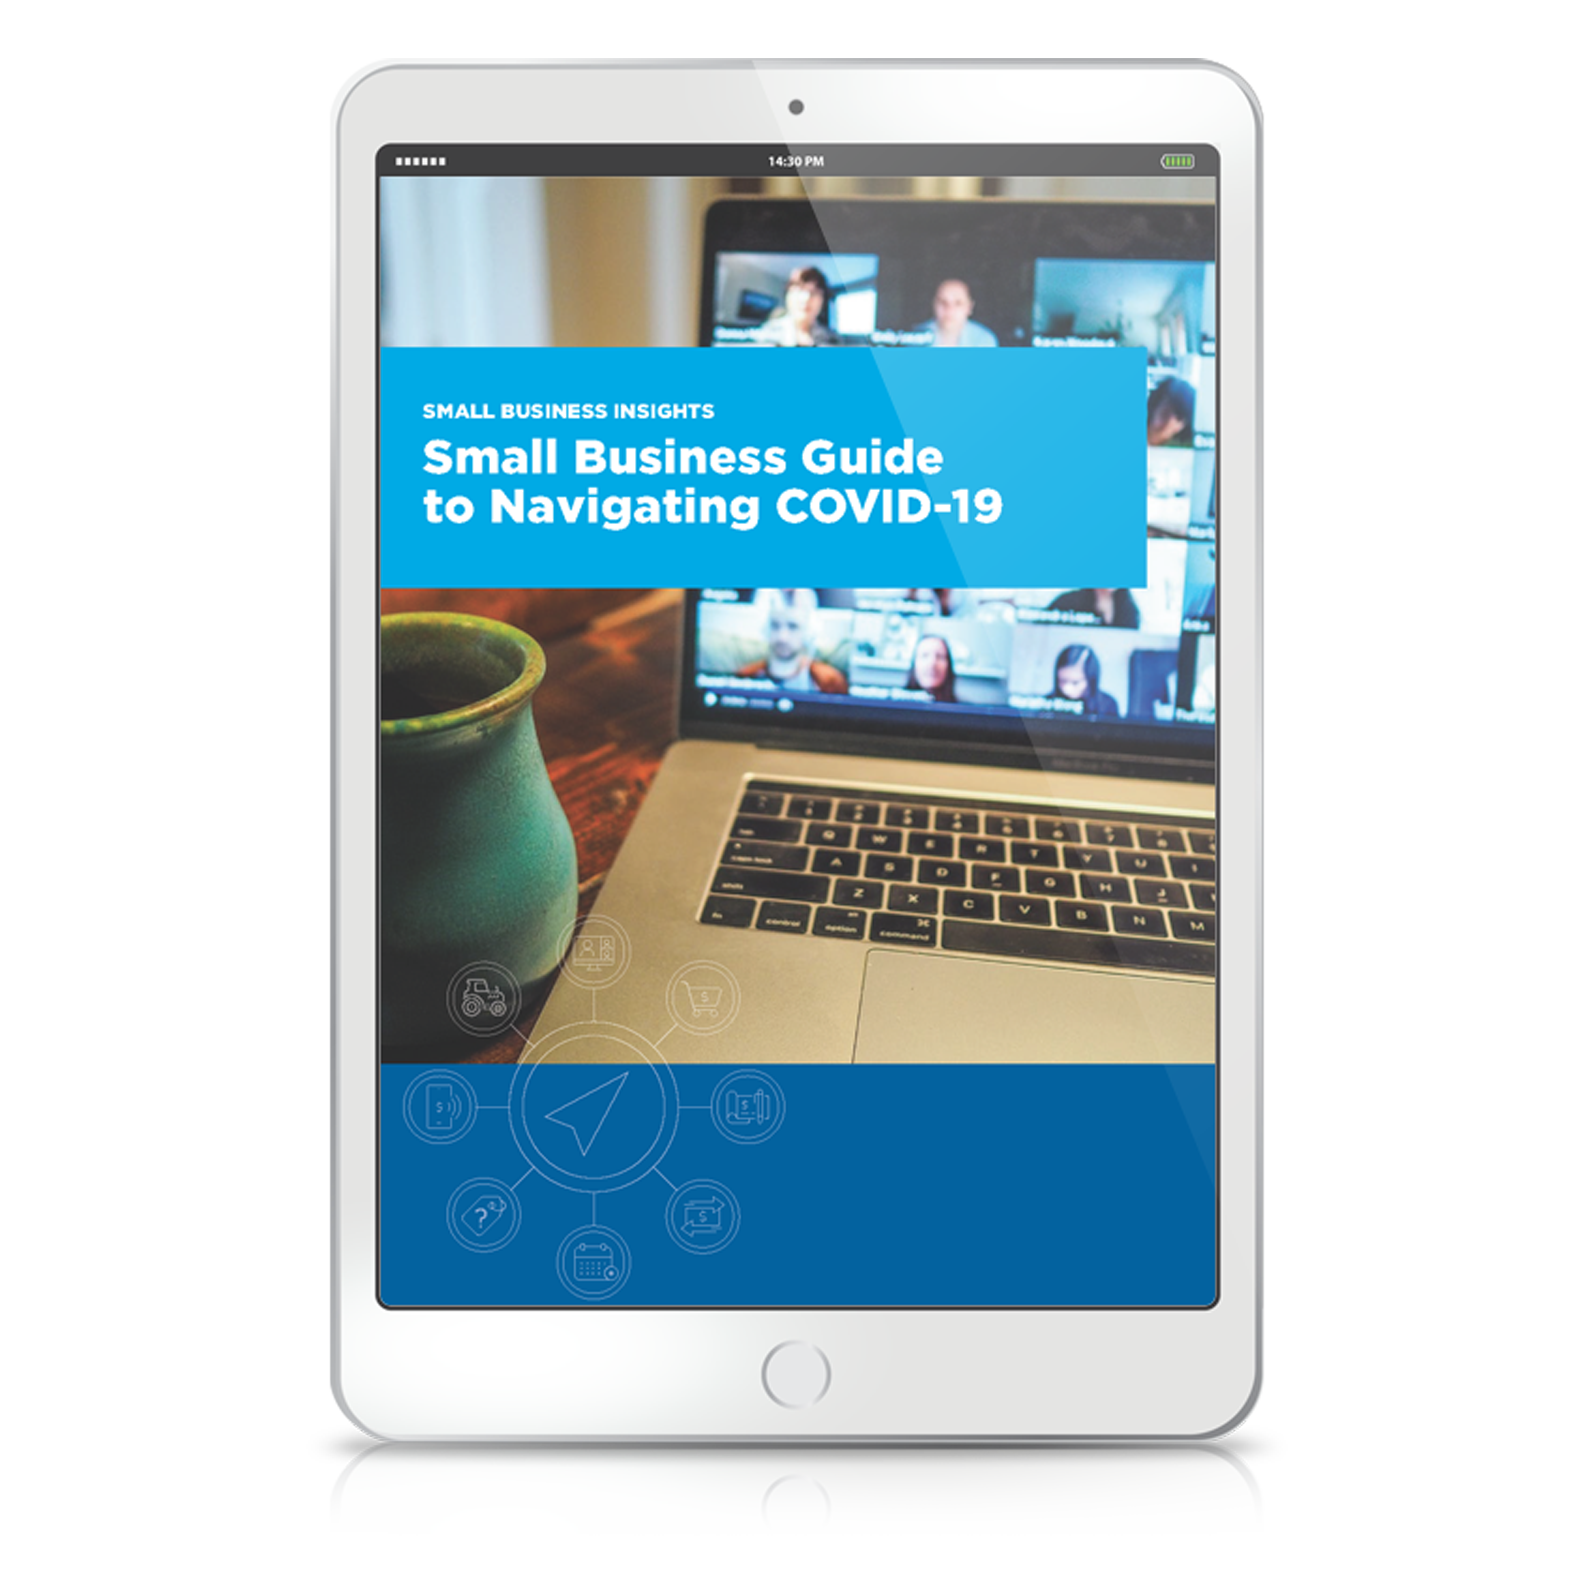 Small Business Guide to Navigating COVID-19